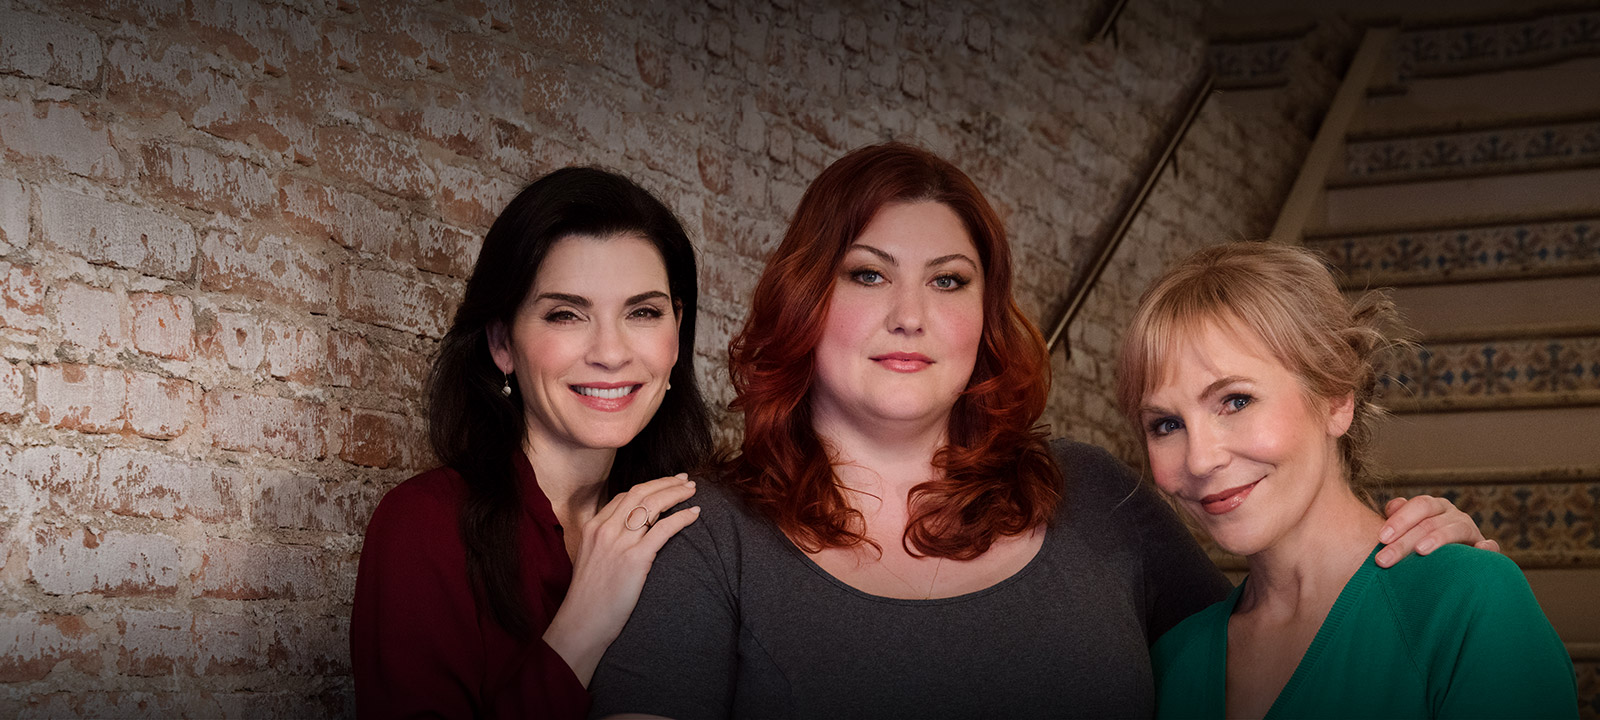 the-minds-behind-dietland-julianna-margulies-joy-nash-800×600-nologo